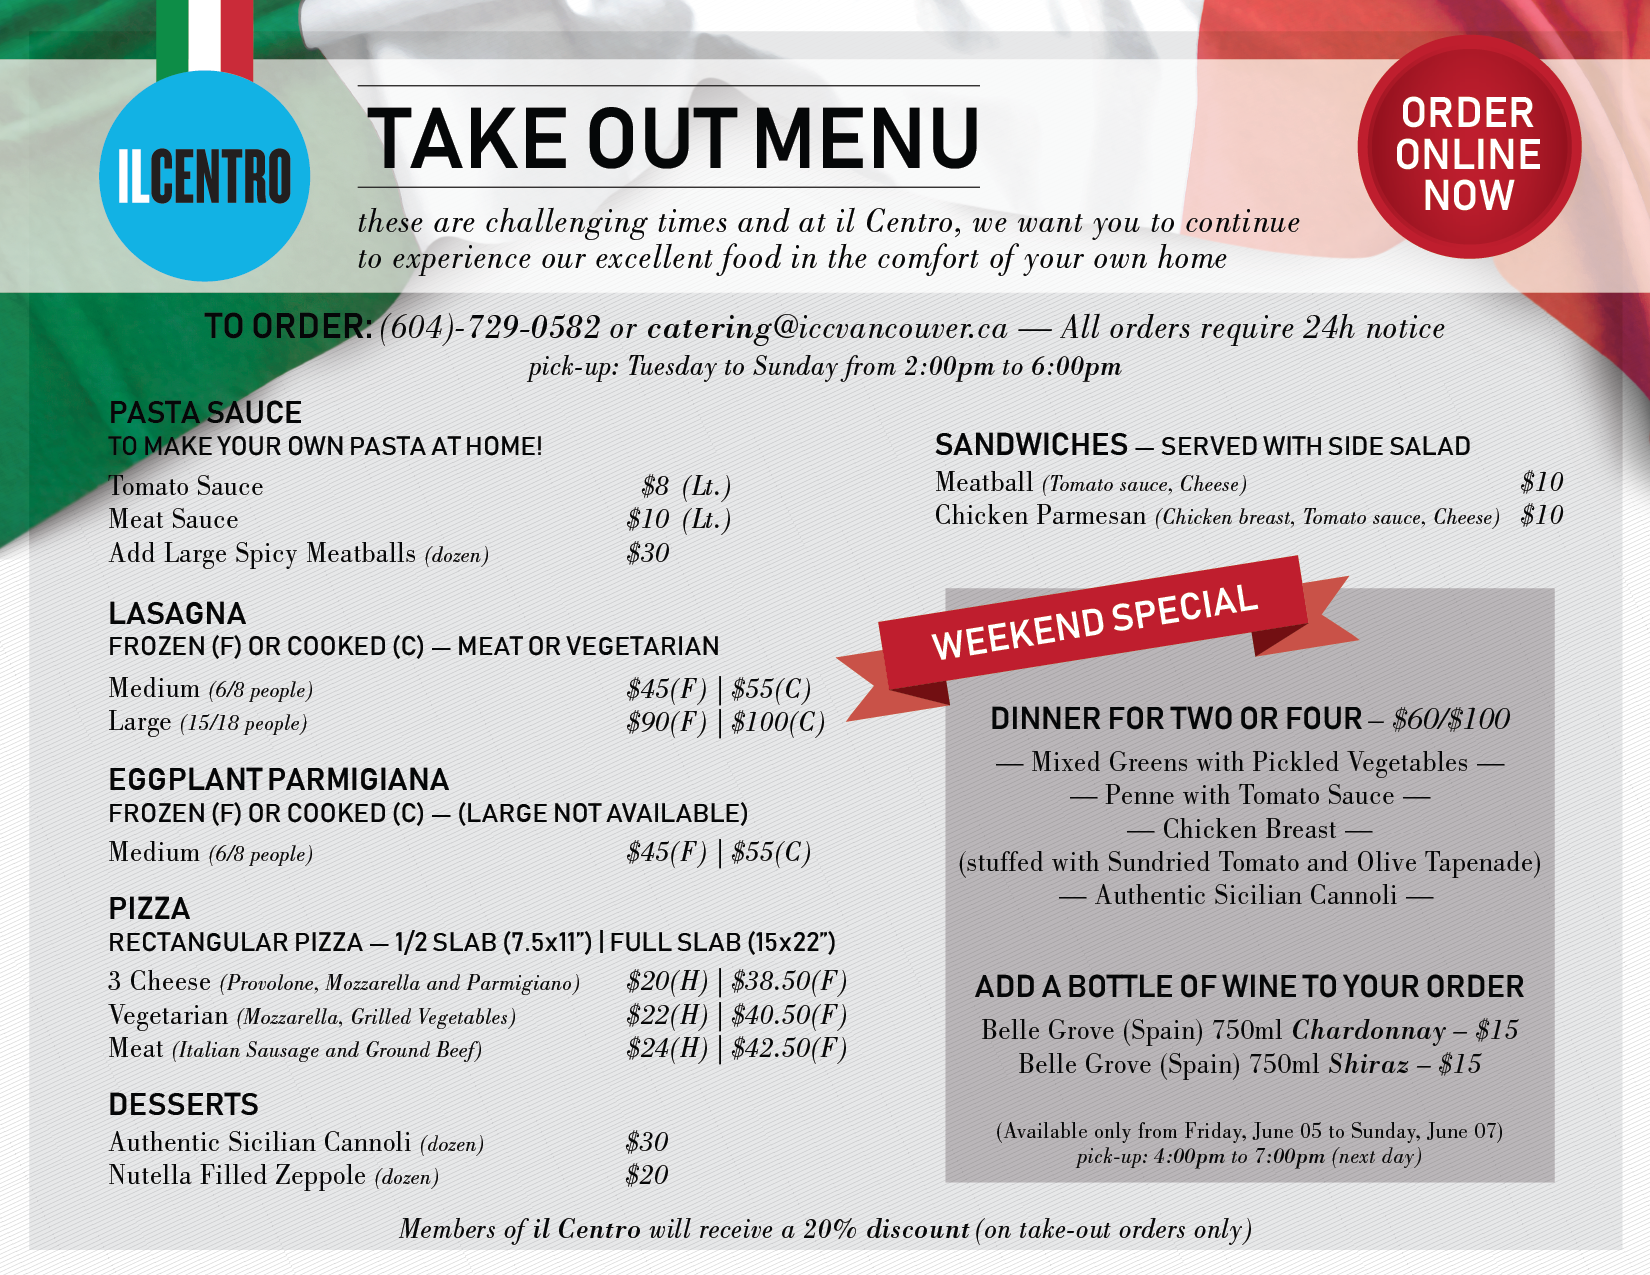 Take Out Menu_06.02.20